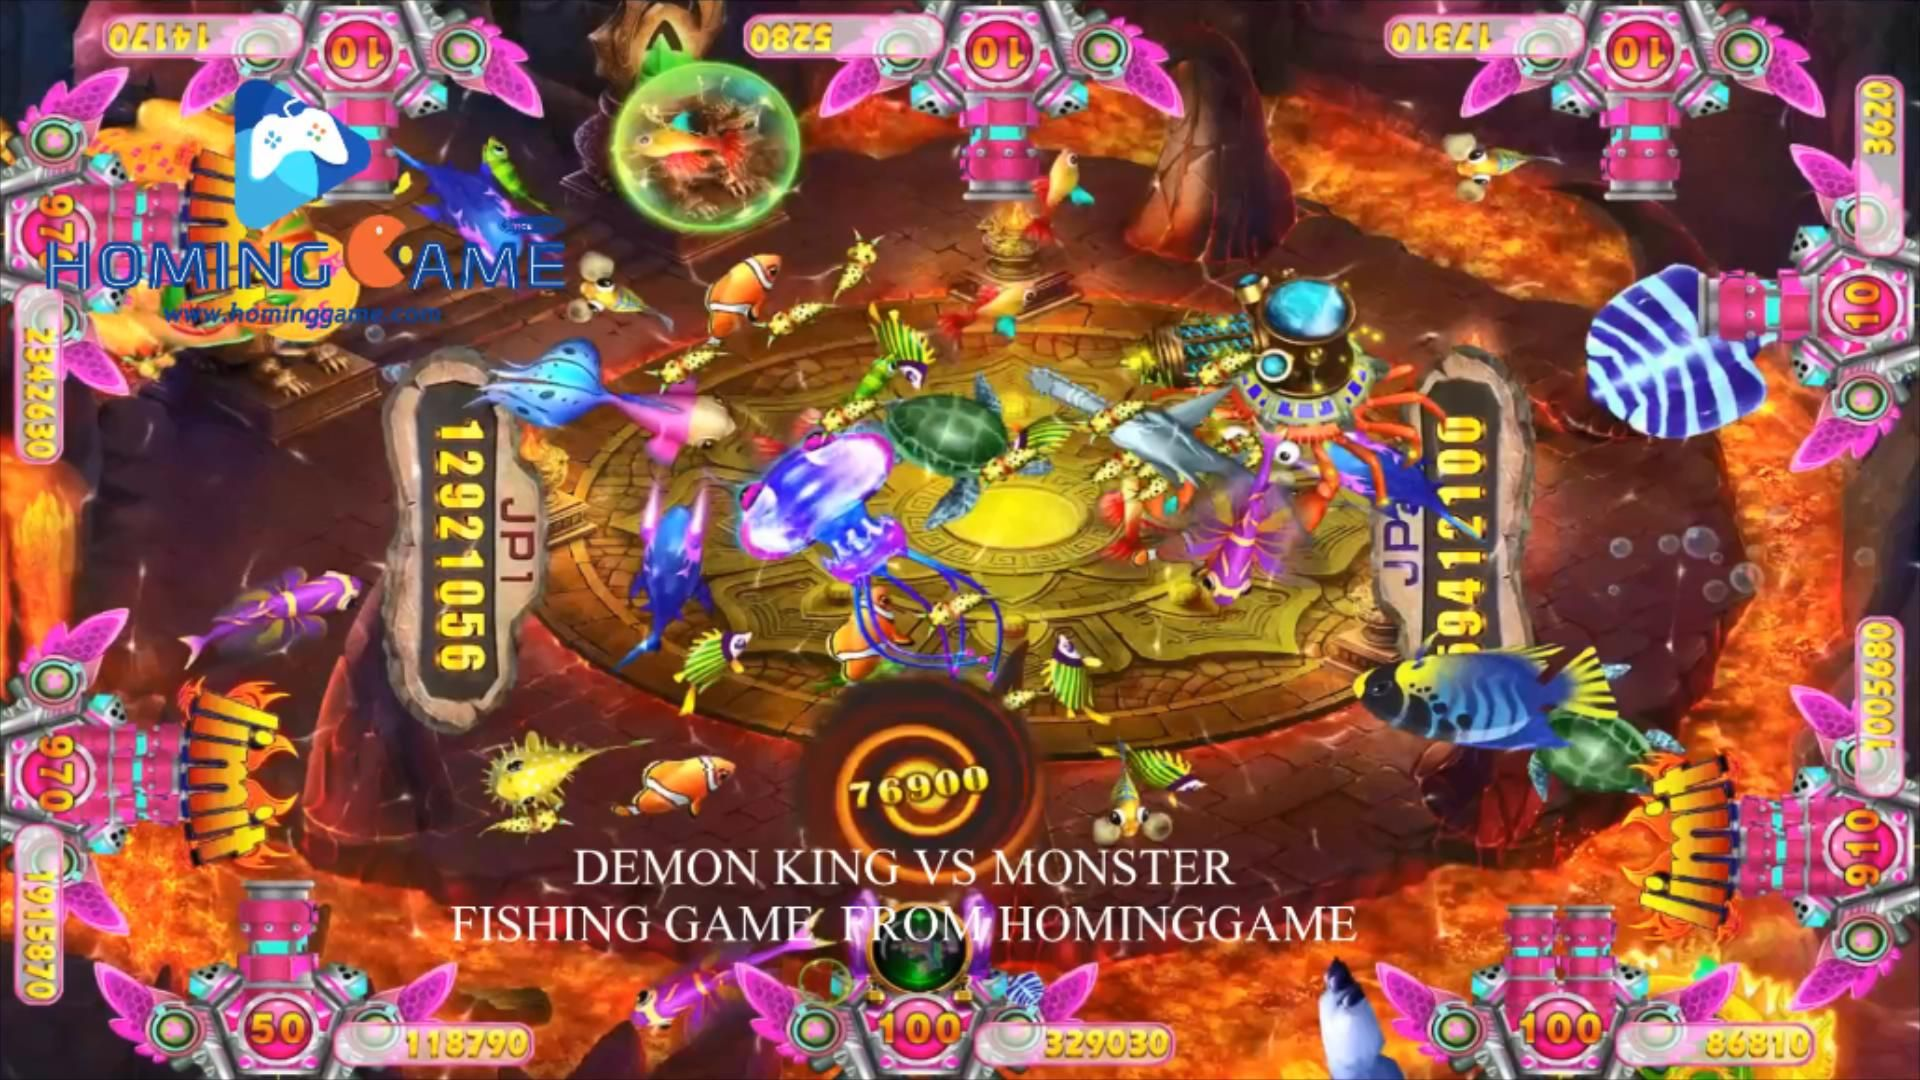 Pin By Jin Hominggame On Hominggame Best Fishing Game Manufacturer In The World Fishing Game Arcade Game Machines Amusement Park Games